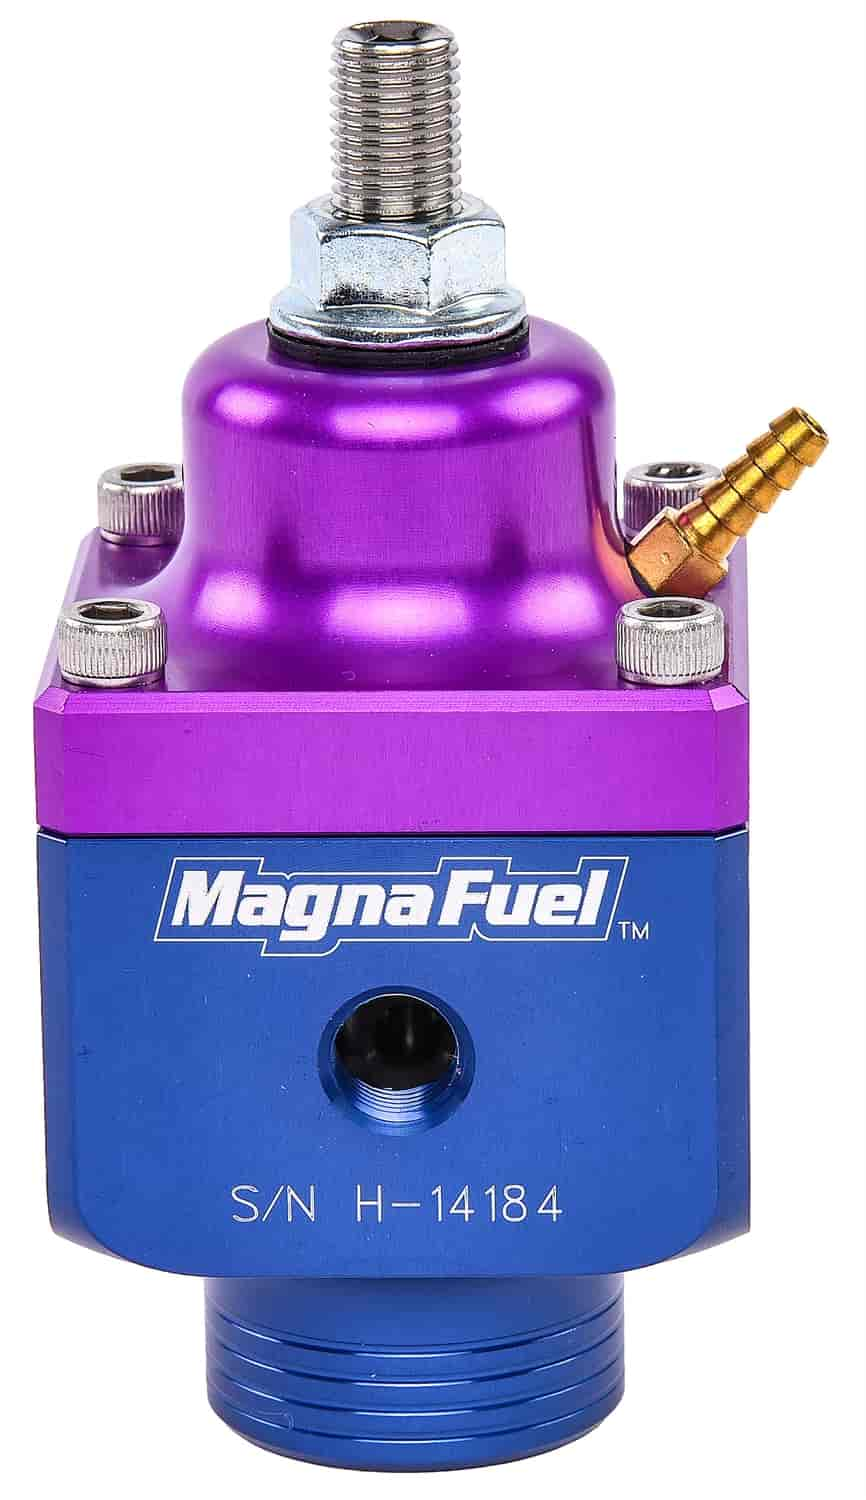 MagnaFuel MP-9433-B - MagnaFuel Carbureted Regulators & Fittings